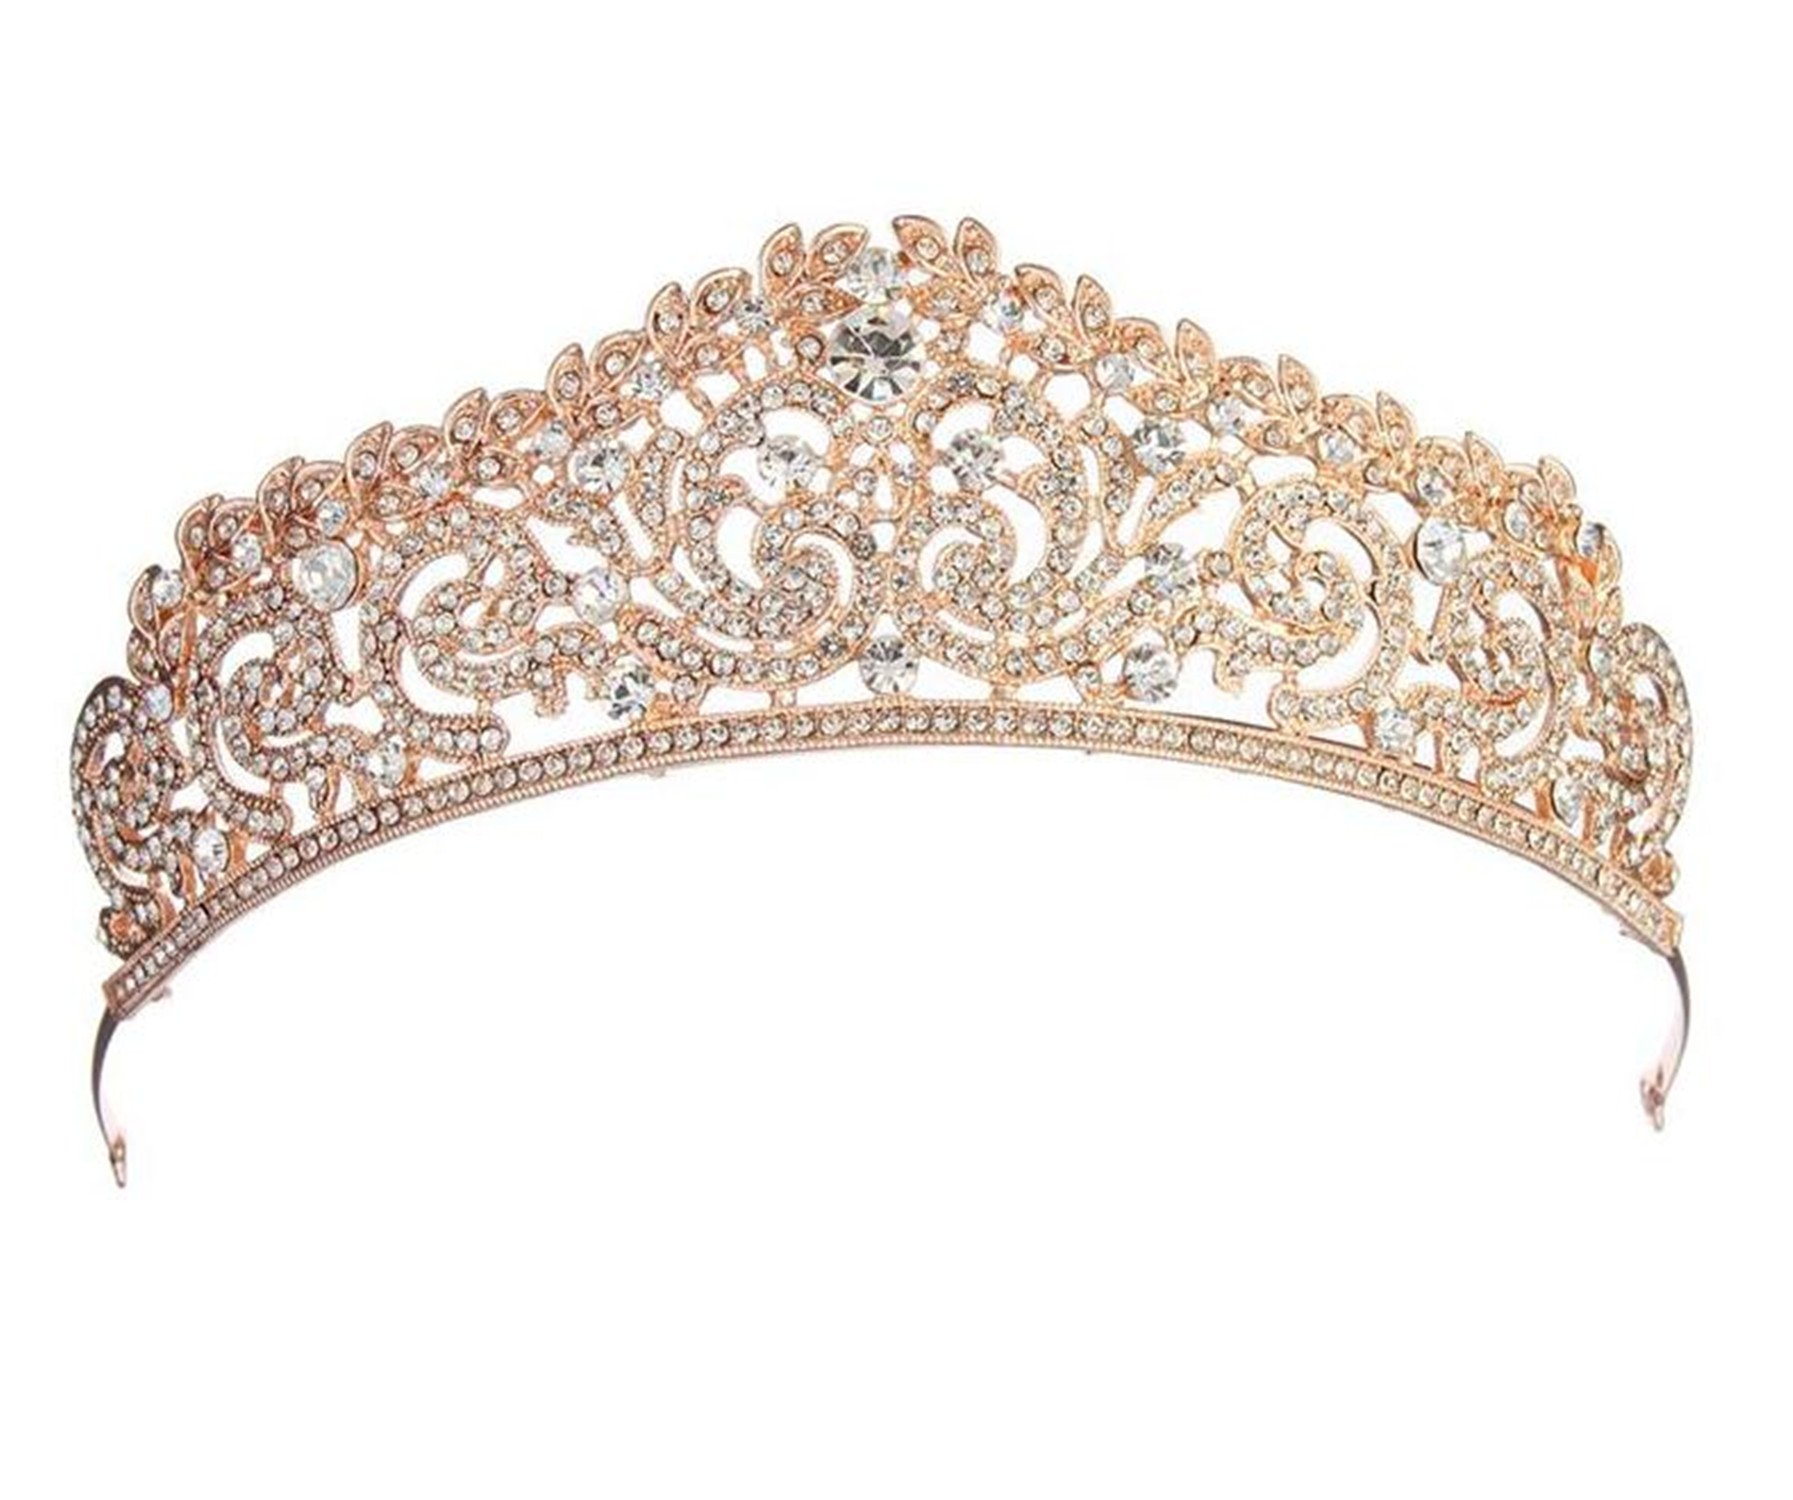 Wiipu Luxury Rose Gold Hair Rhinestone Crystal Wedding Bridal Tiara Crown(A1060)